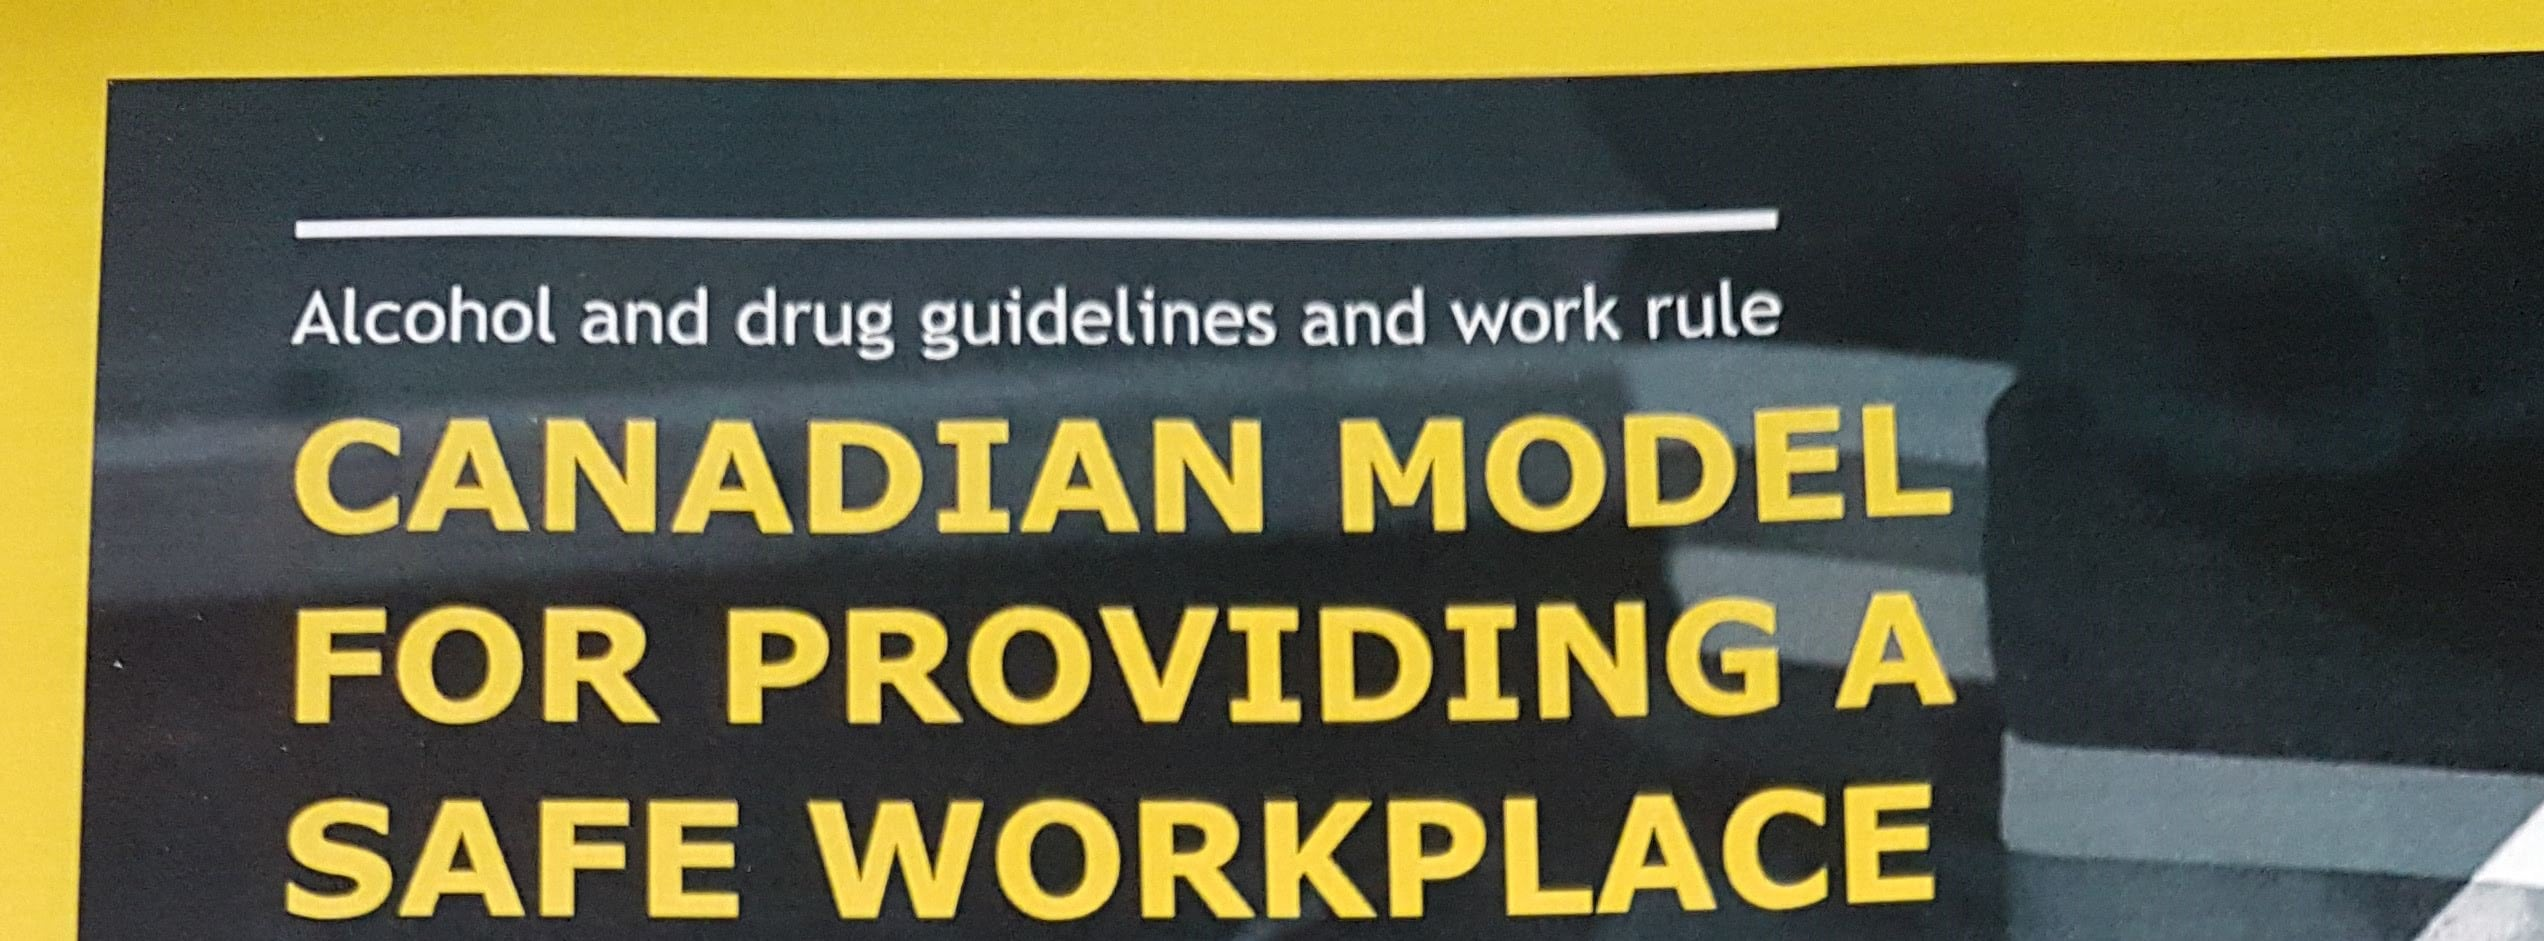 Canadian Model for providing a safe workplace